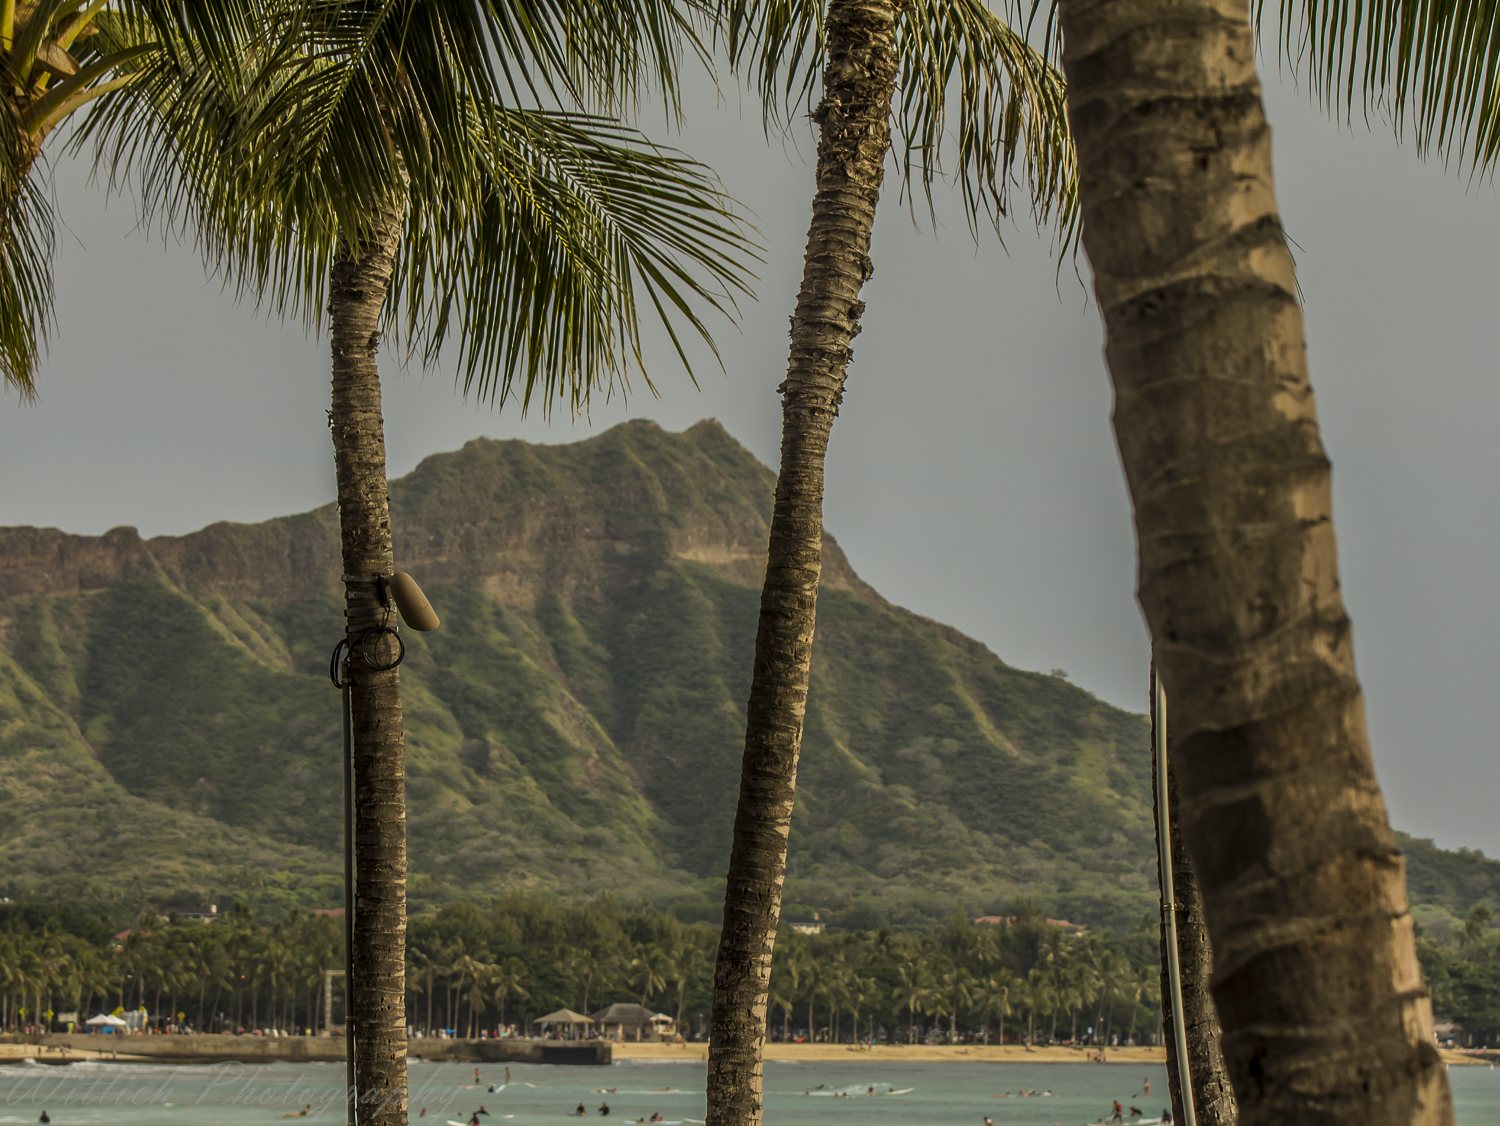 20180127-hawaii days 1-4_MG_0706-2.jpg